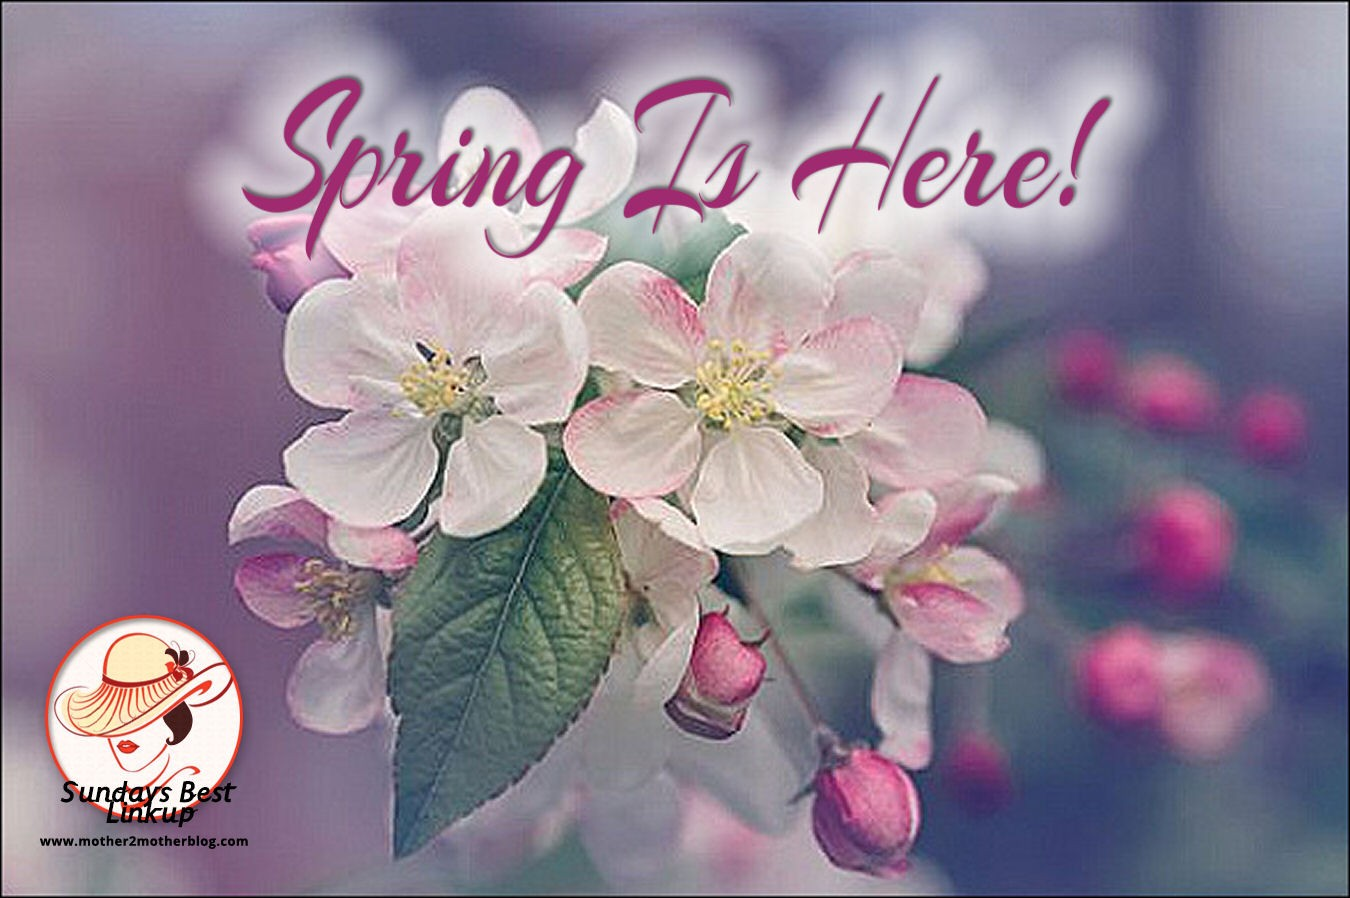 Sunday's Best Linkup - Spring is Here Theme Week